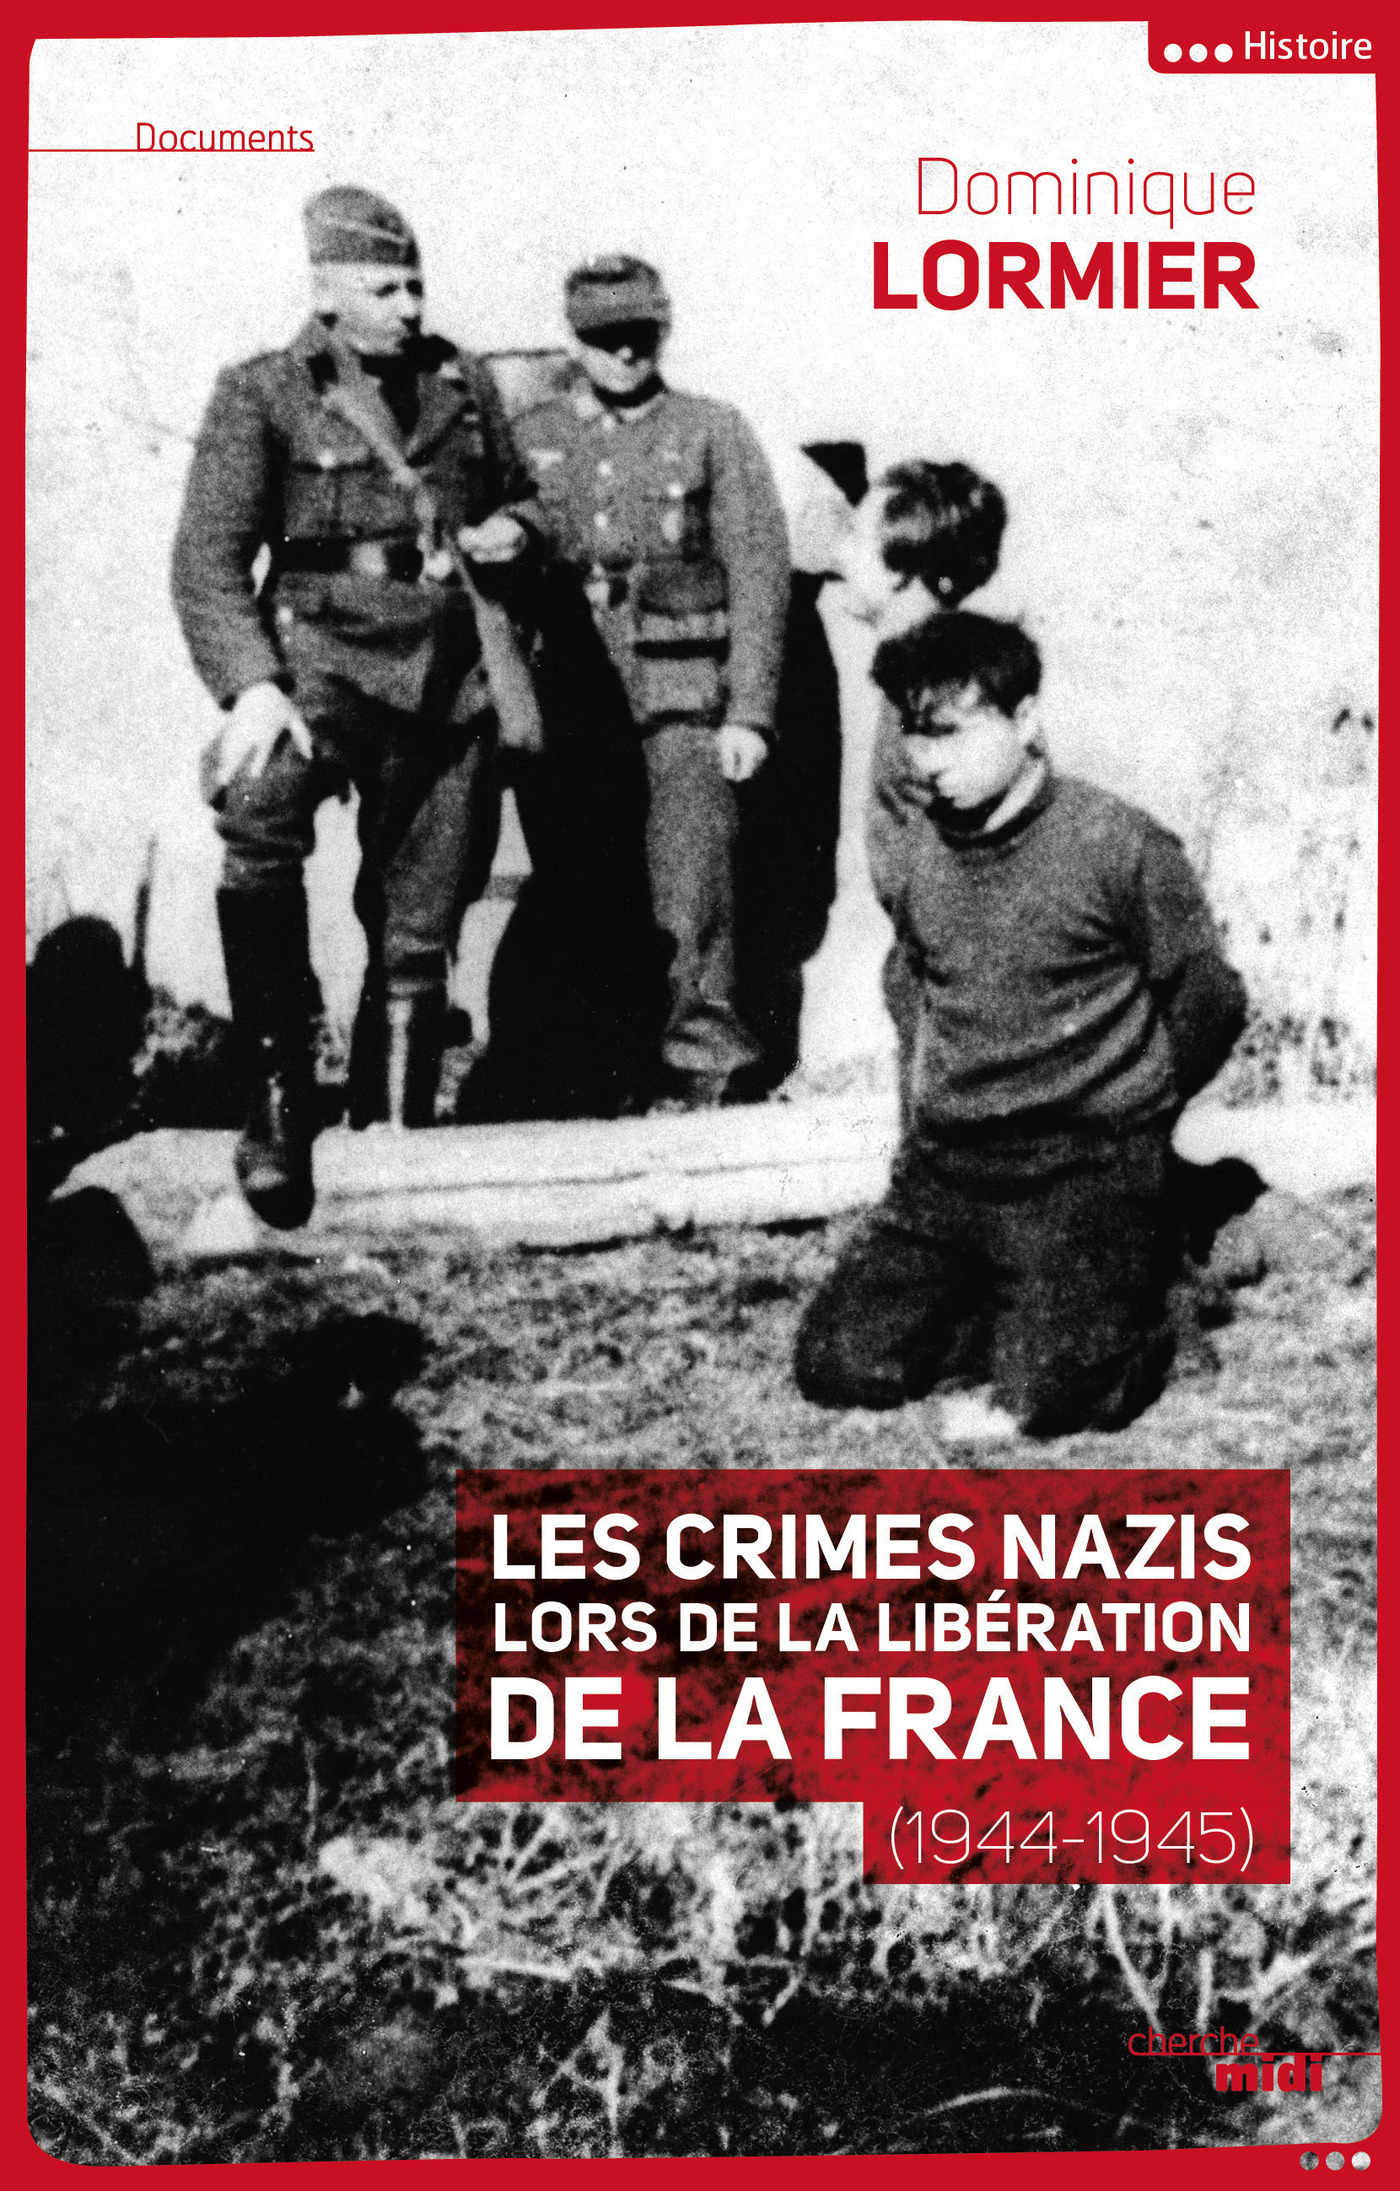 Les crimes nazis lors de la libération de la France (1944-1945) (ebook)